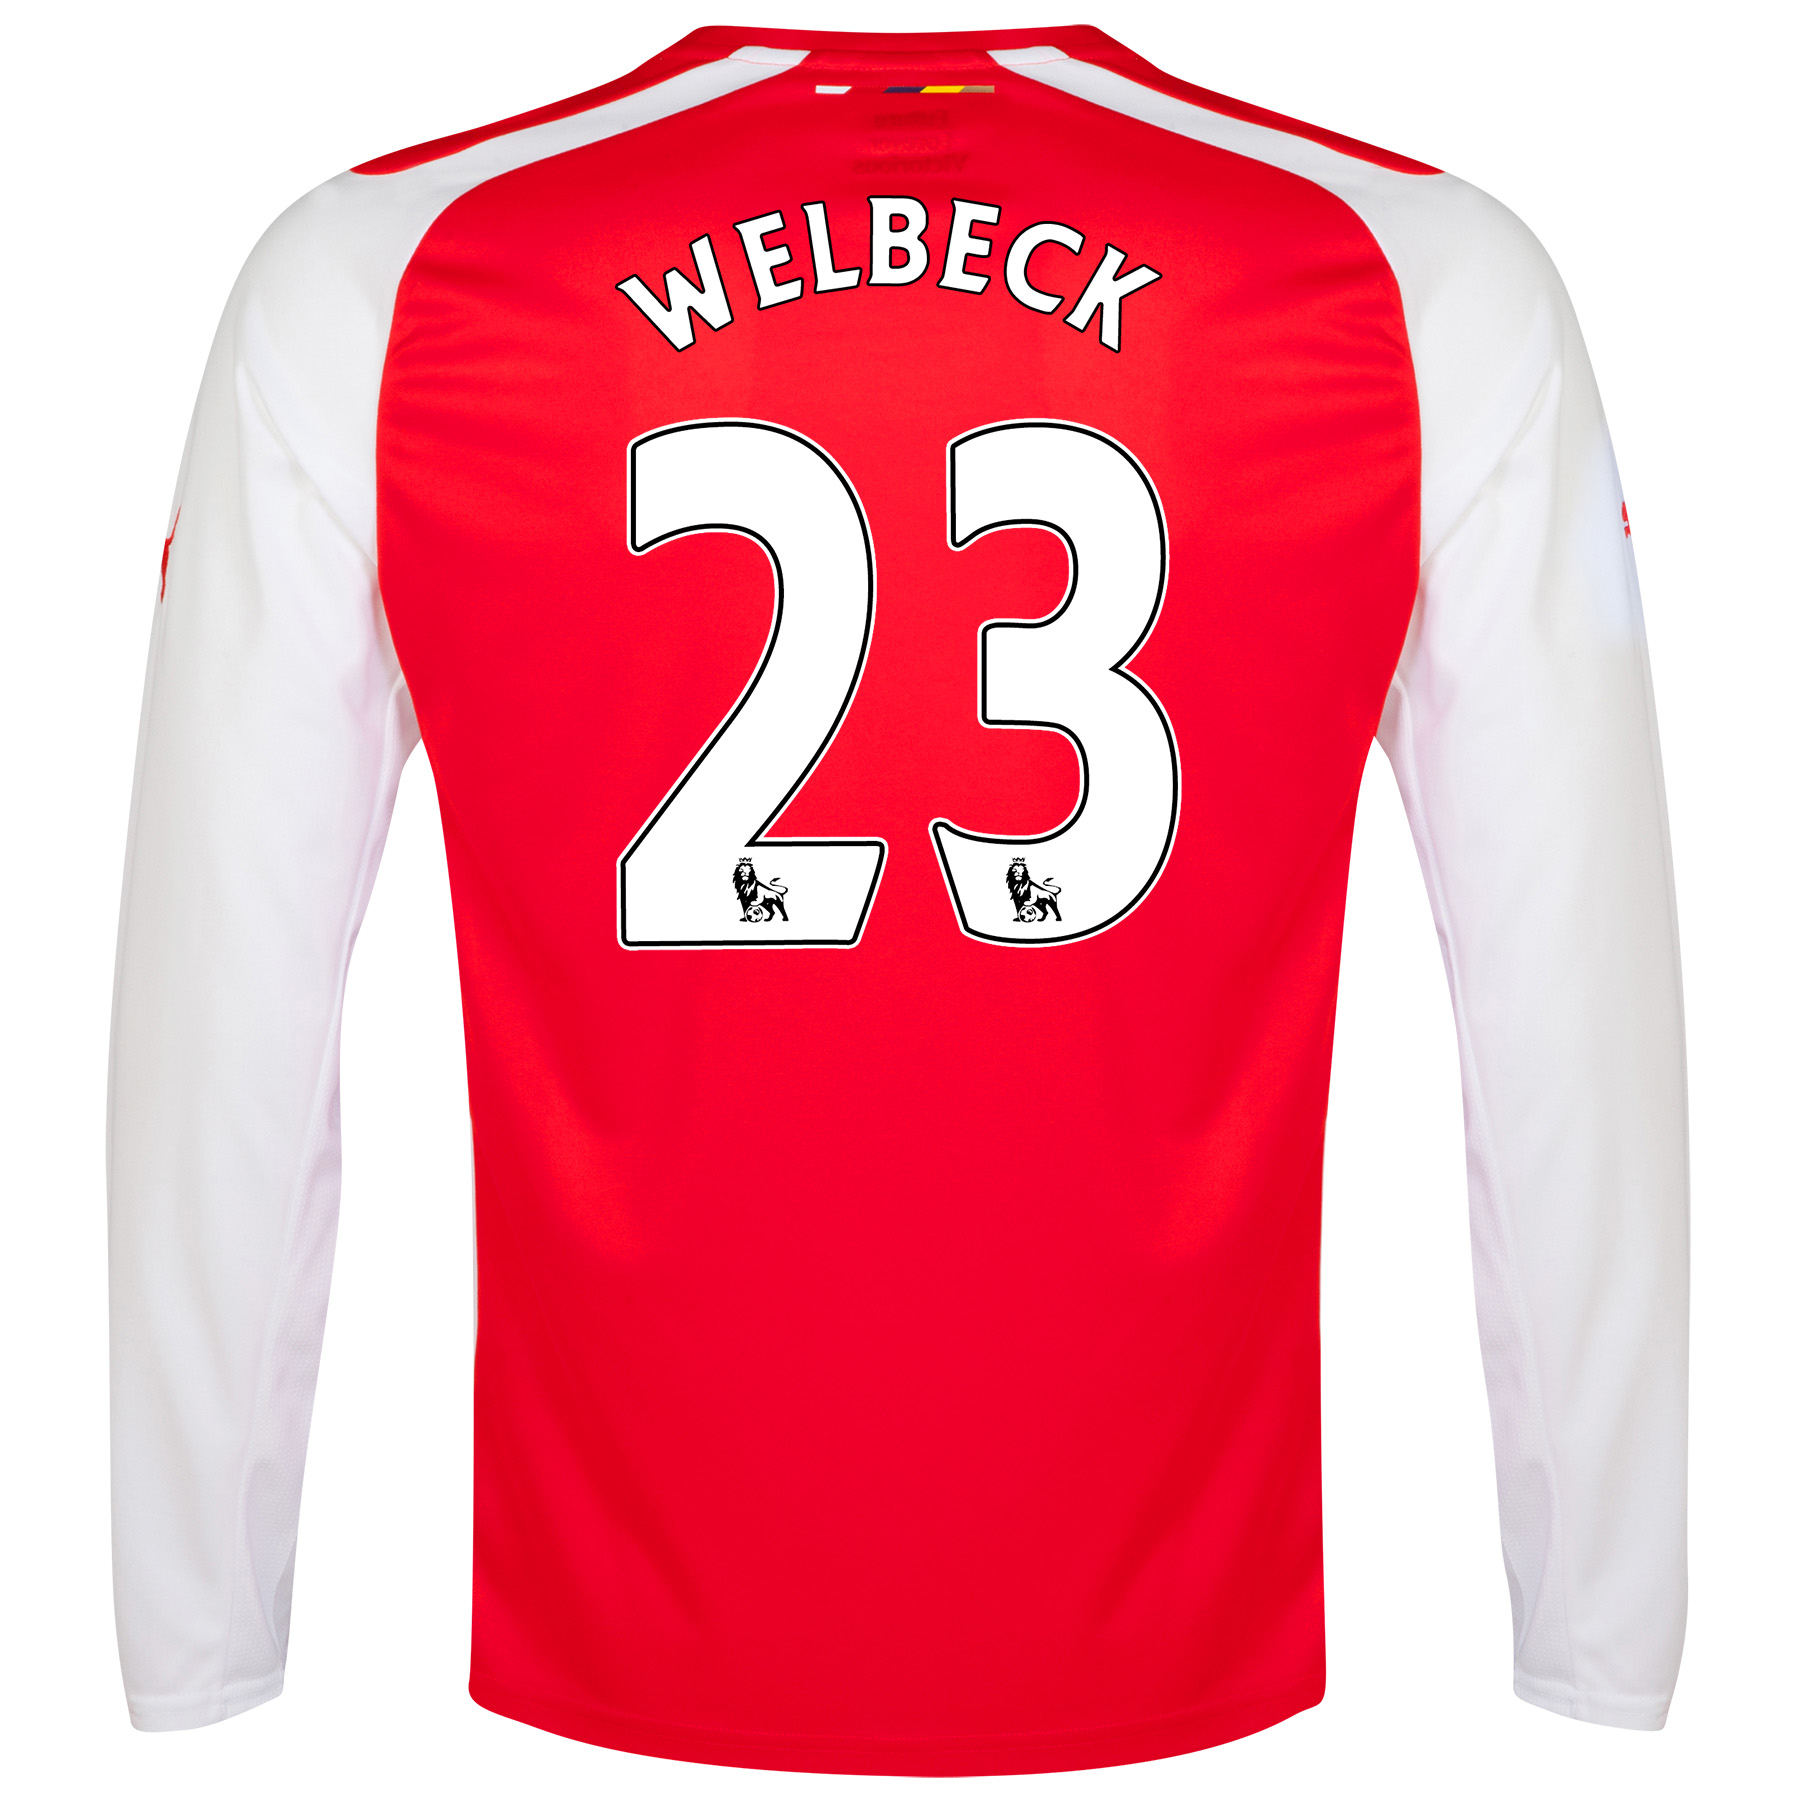 Arsenal Home Shirt 2014/15 - Long Sleeve with Welbeck 23 printing